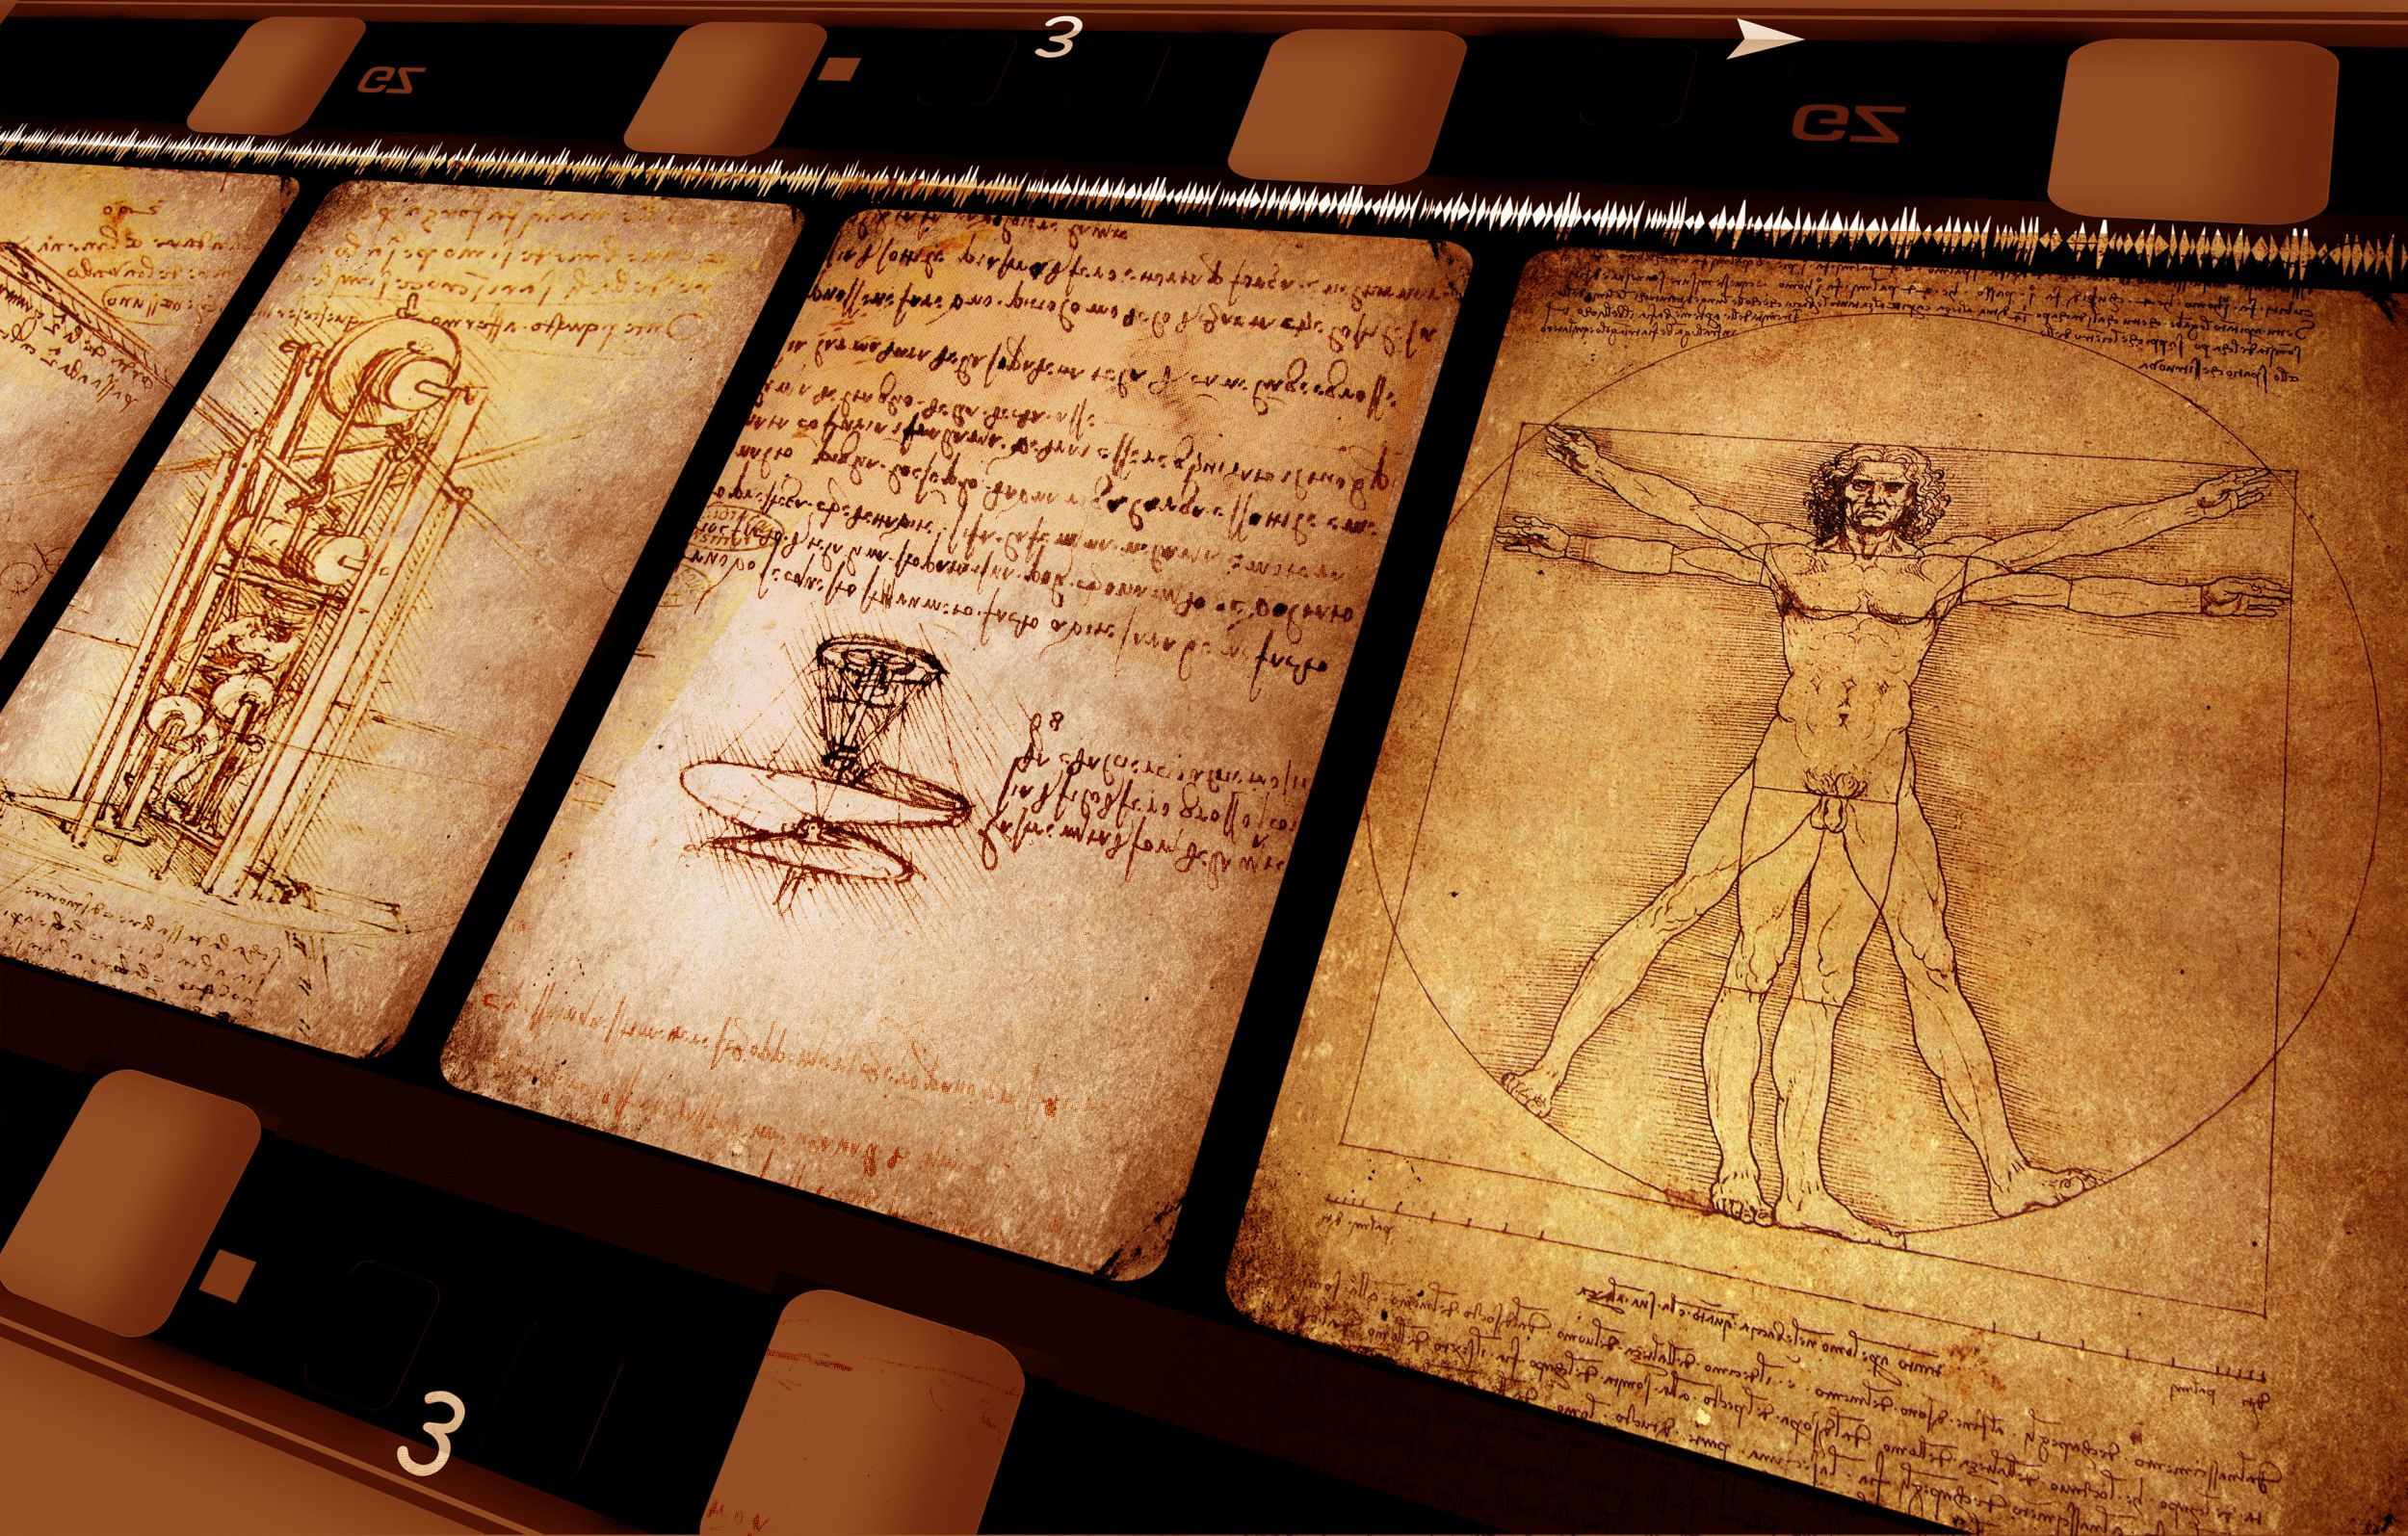 Drawings featuring Leonardo Da Vinci's Vitruvian Man (Thinkstock/PA)